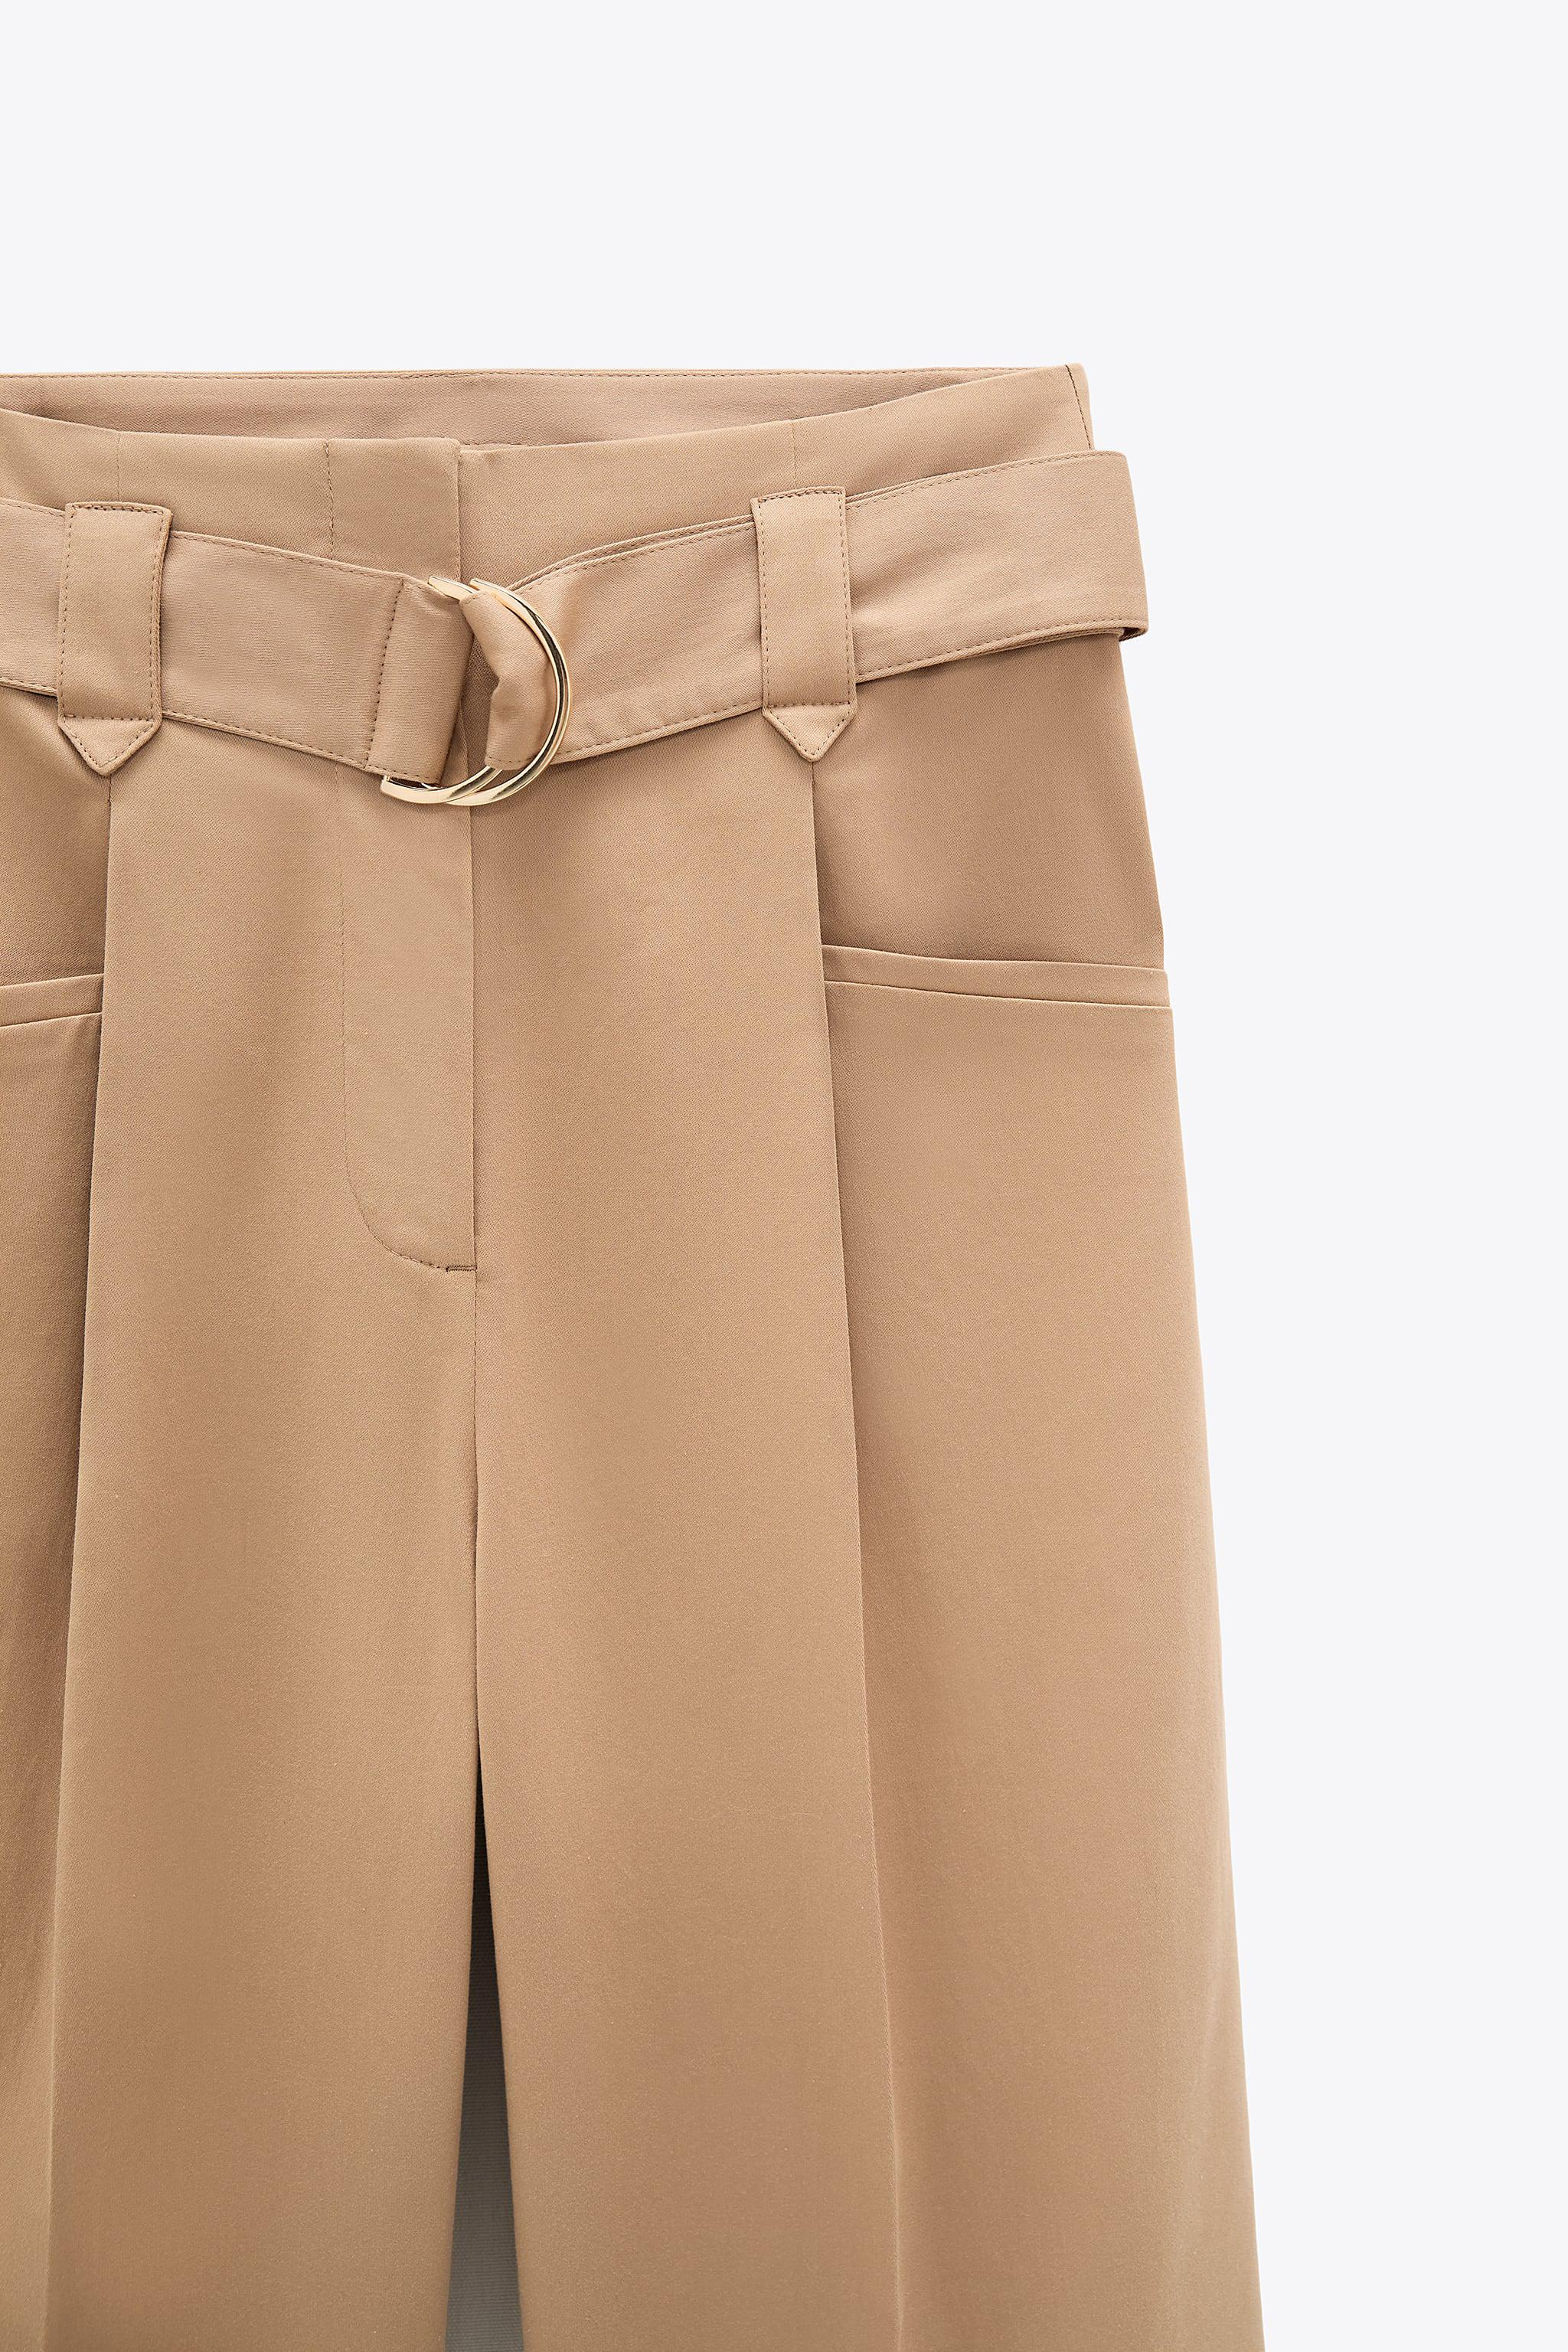 WIDE LEG BELTED PANTS 8